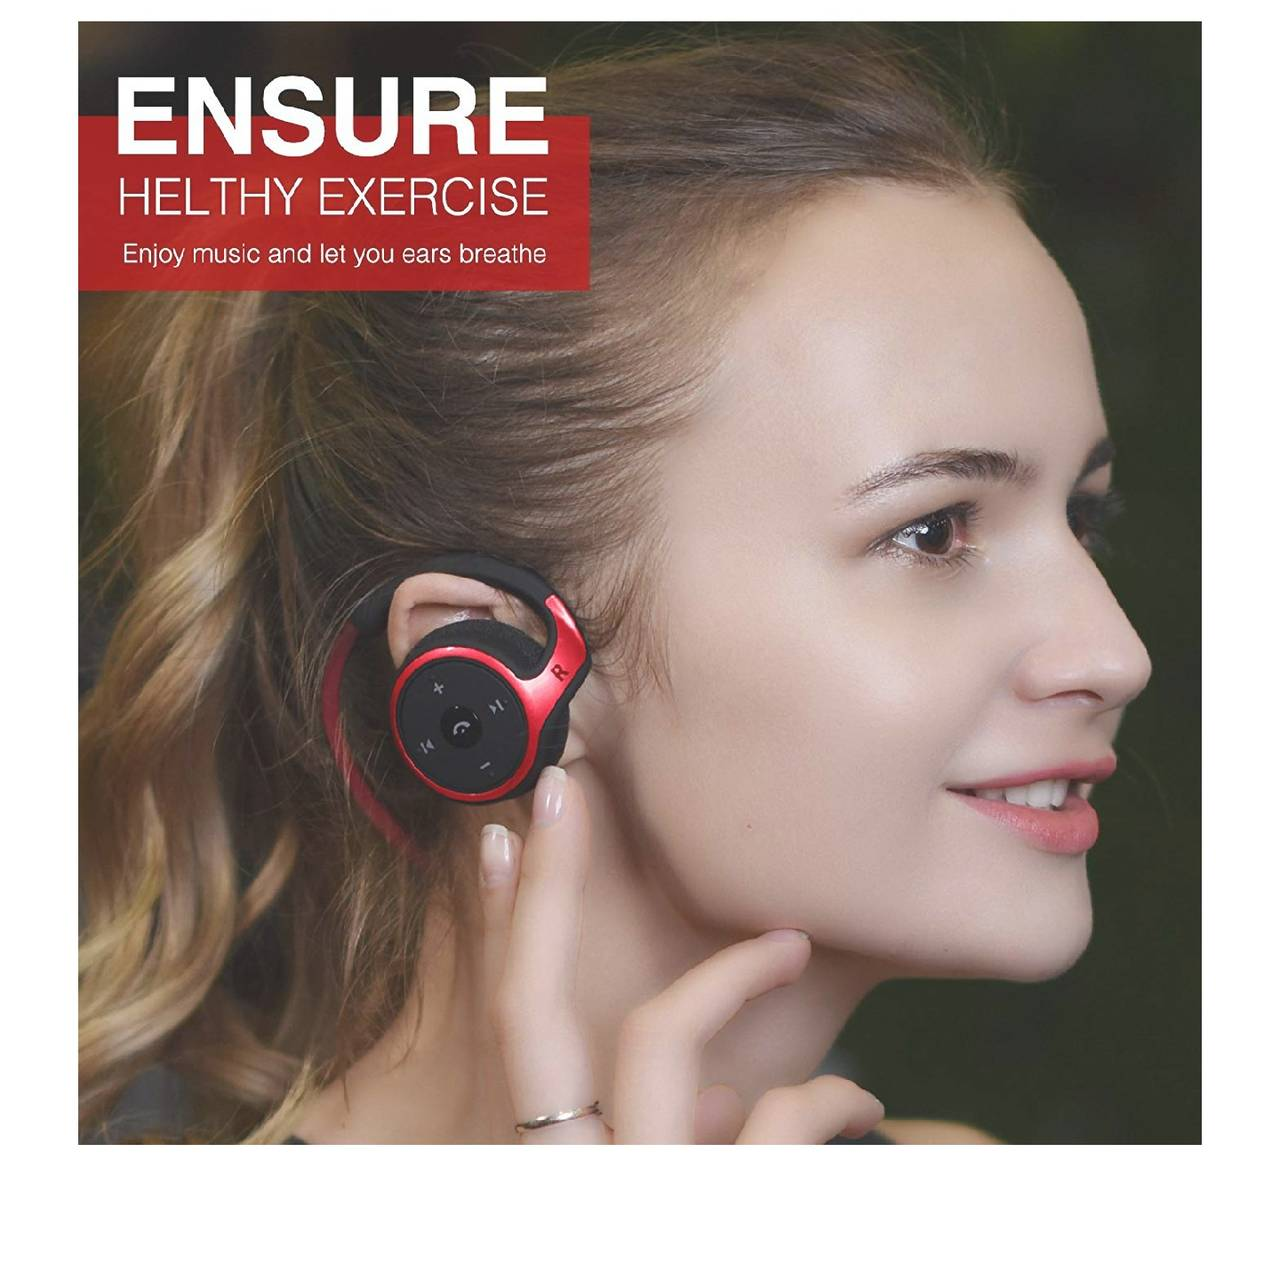 AURICULARES BLUETOOTH RUNNING  - Foto 2